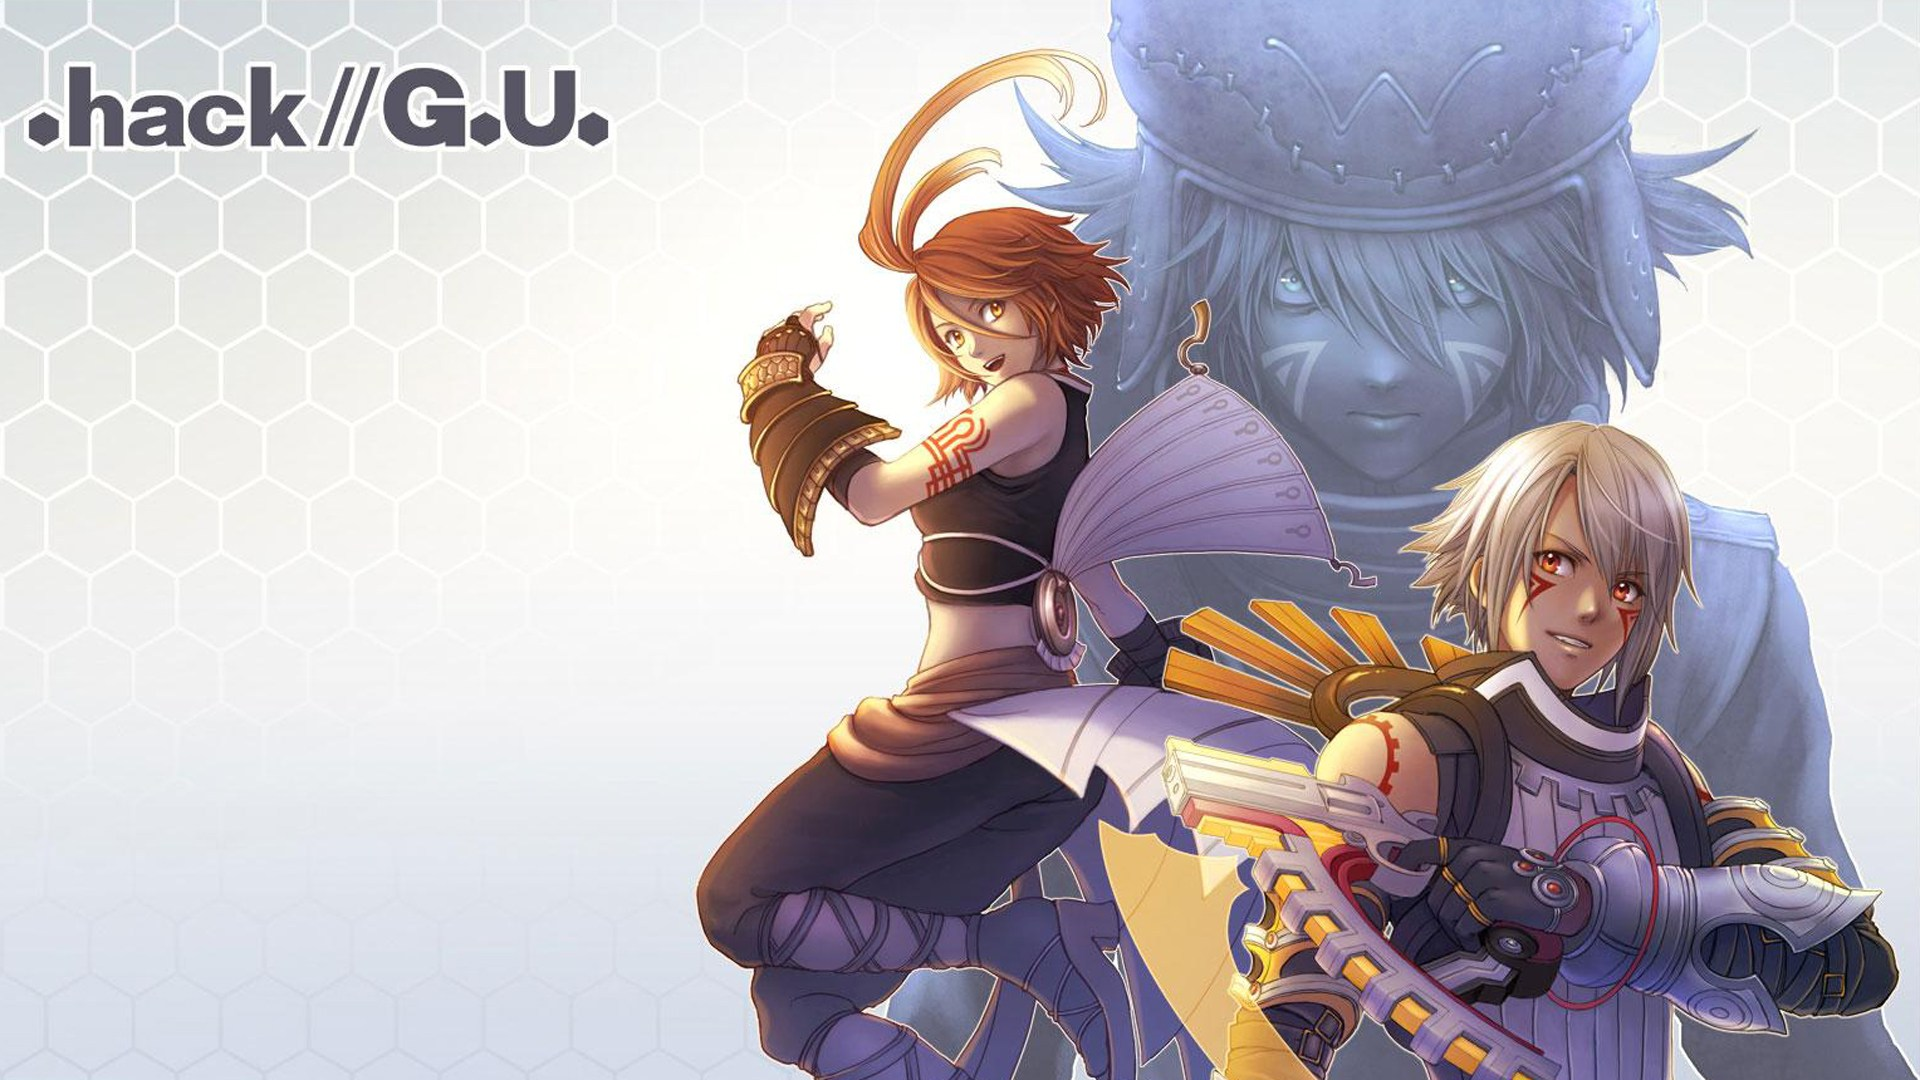 hack hackGU Haseo HD Wallpaper Background 16175 Wallur 1920x1080